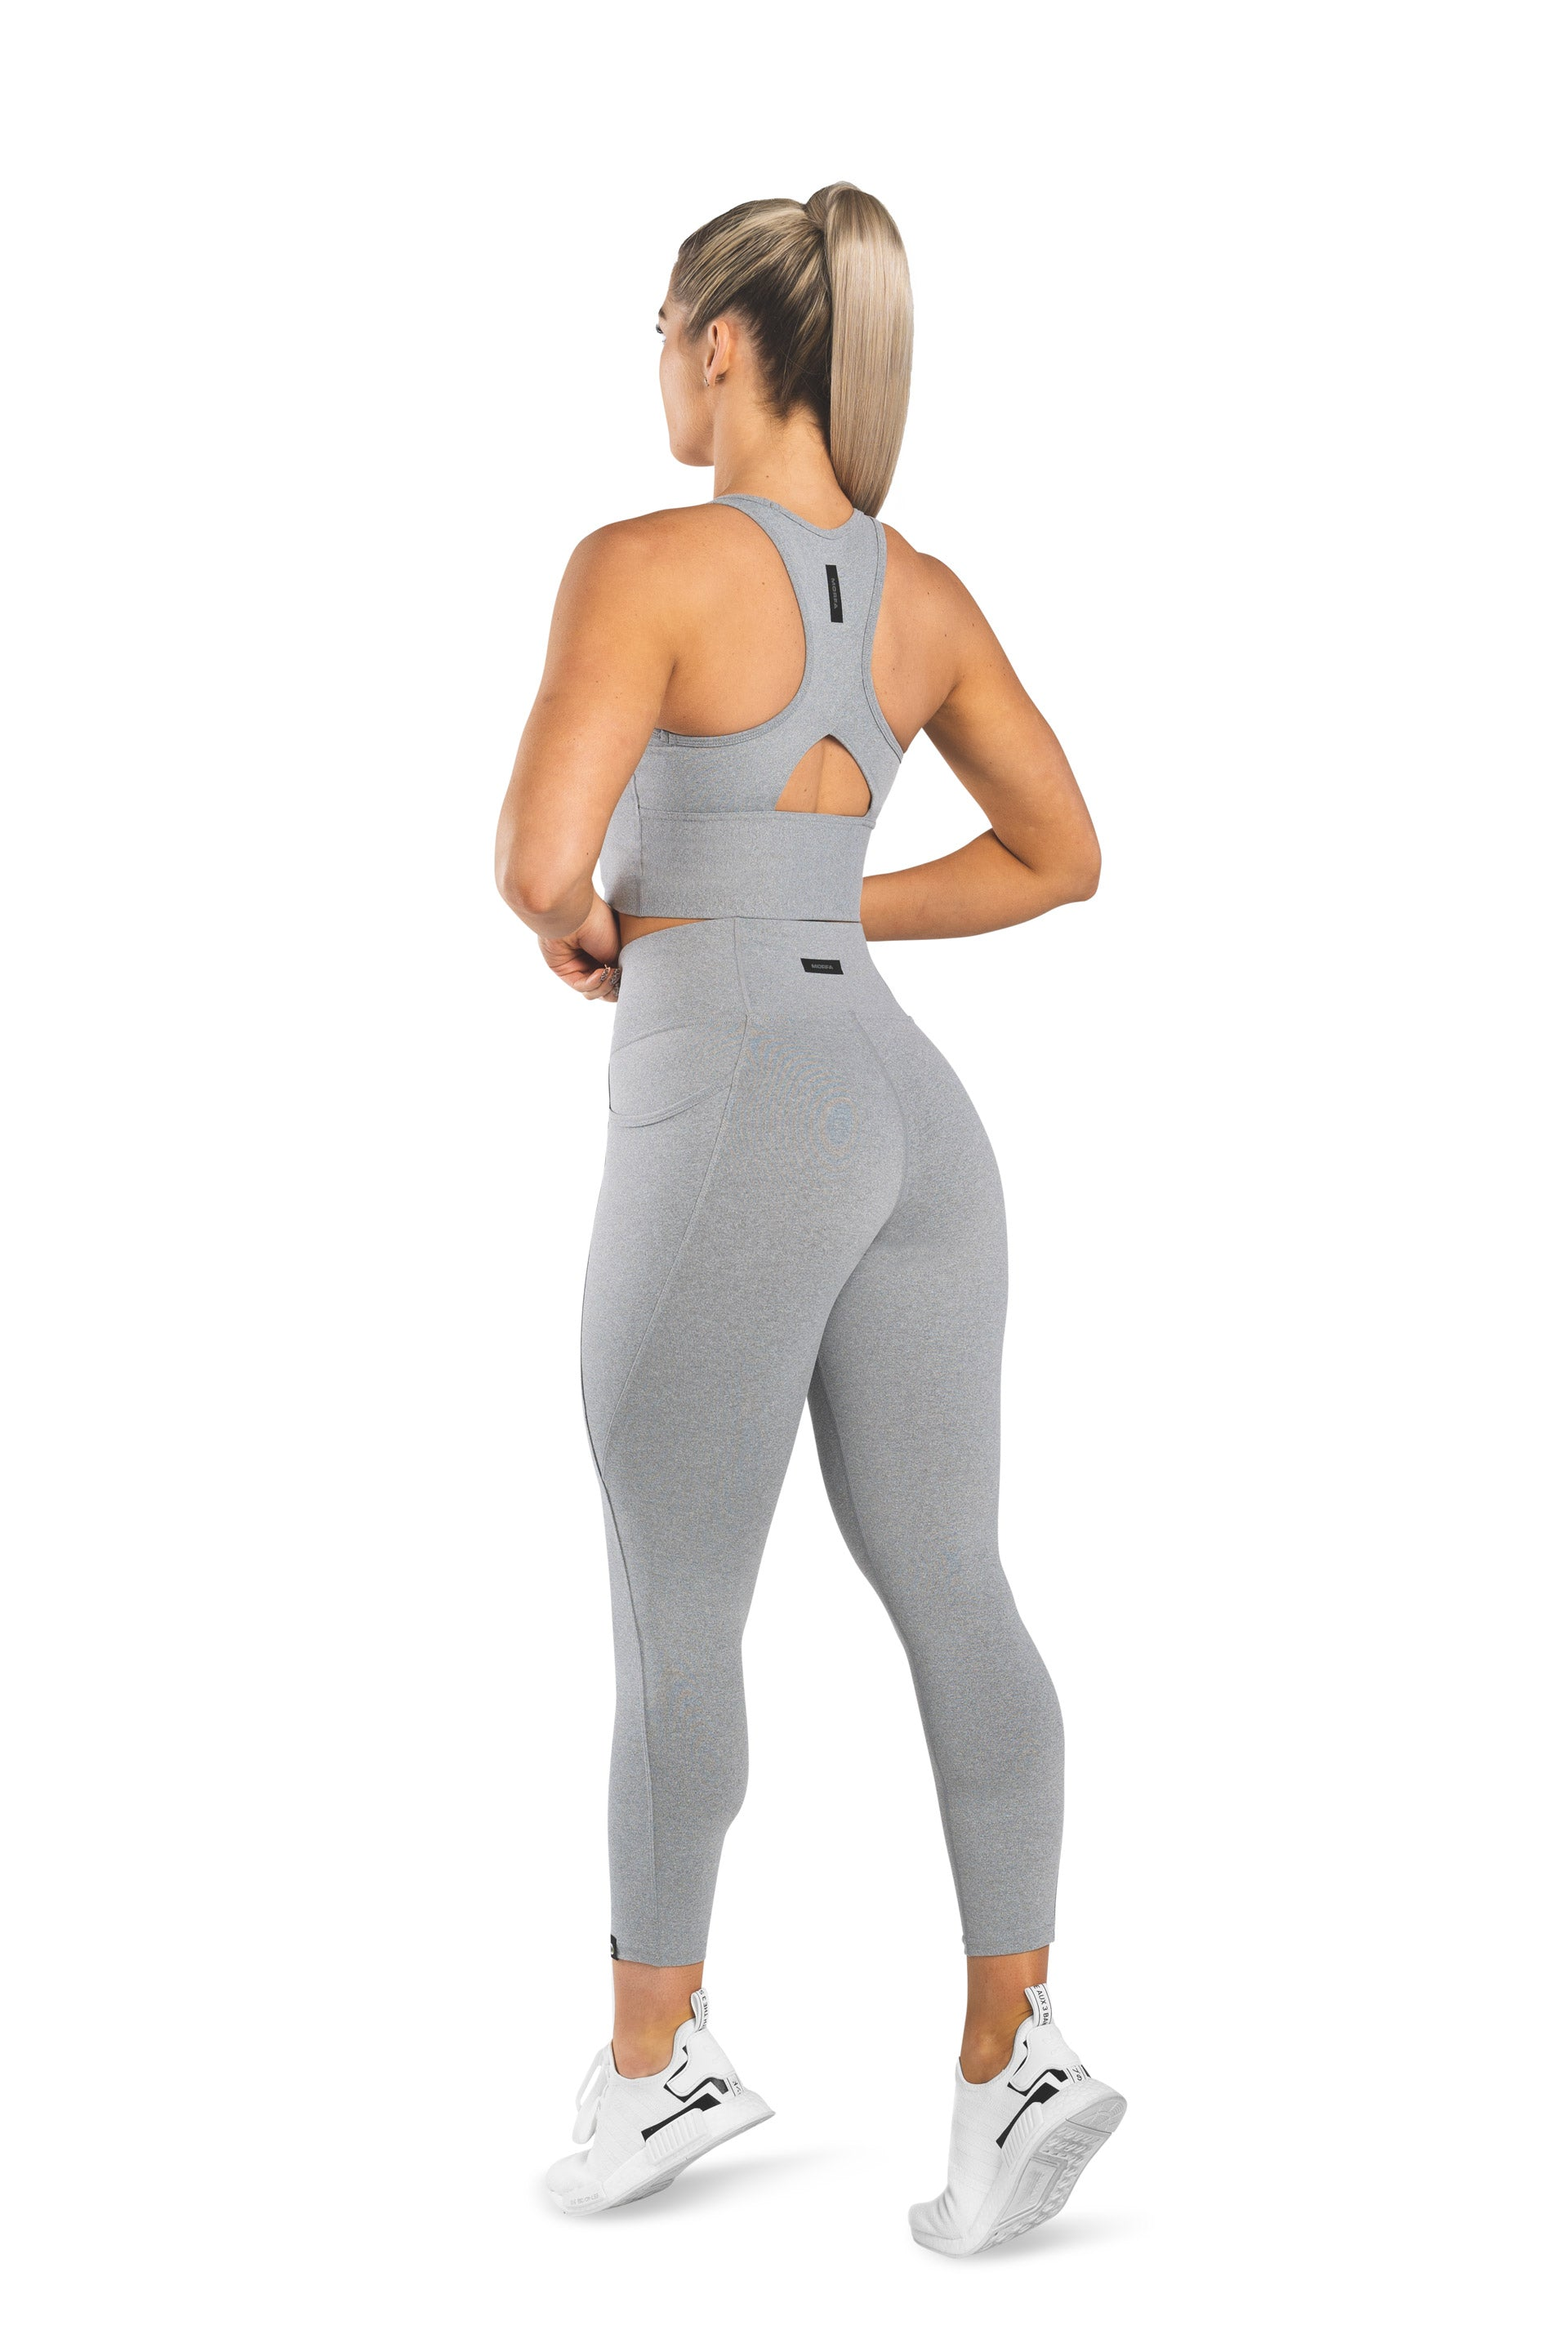 HIGH WAISTED SIDE POCKET 7/8 TIGHT - DOVE GREY MARL